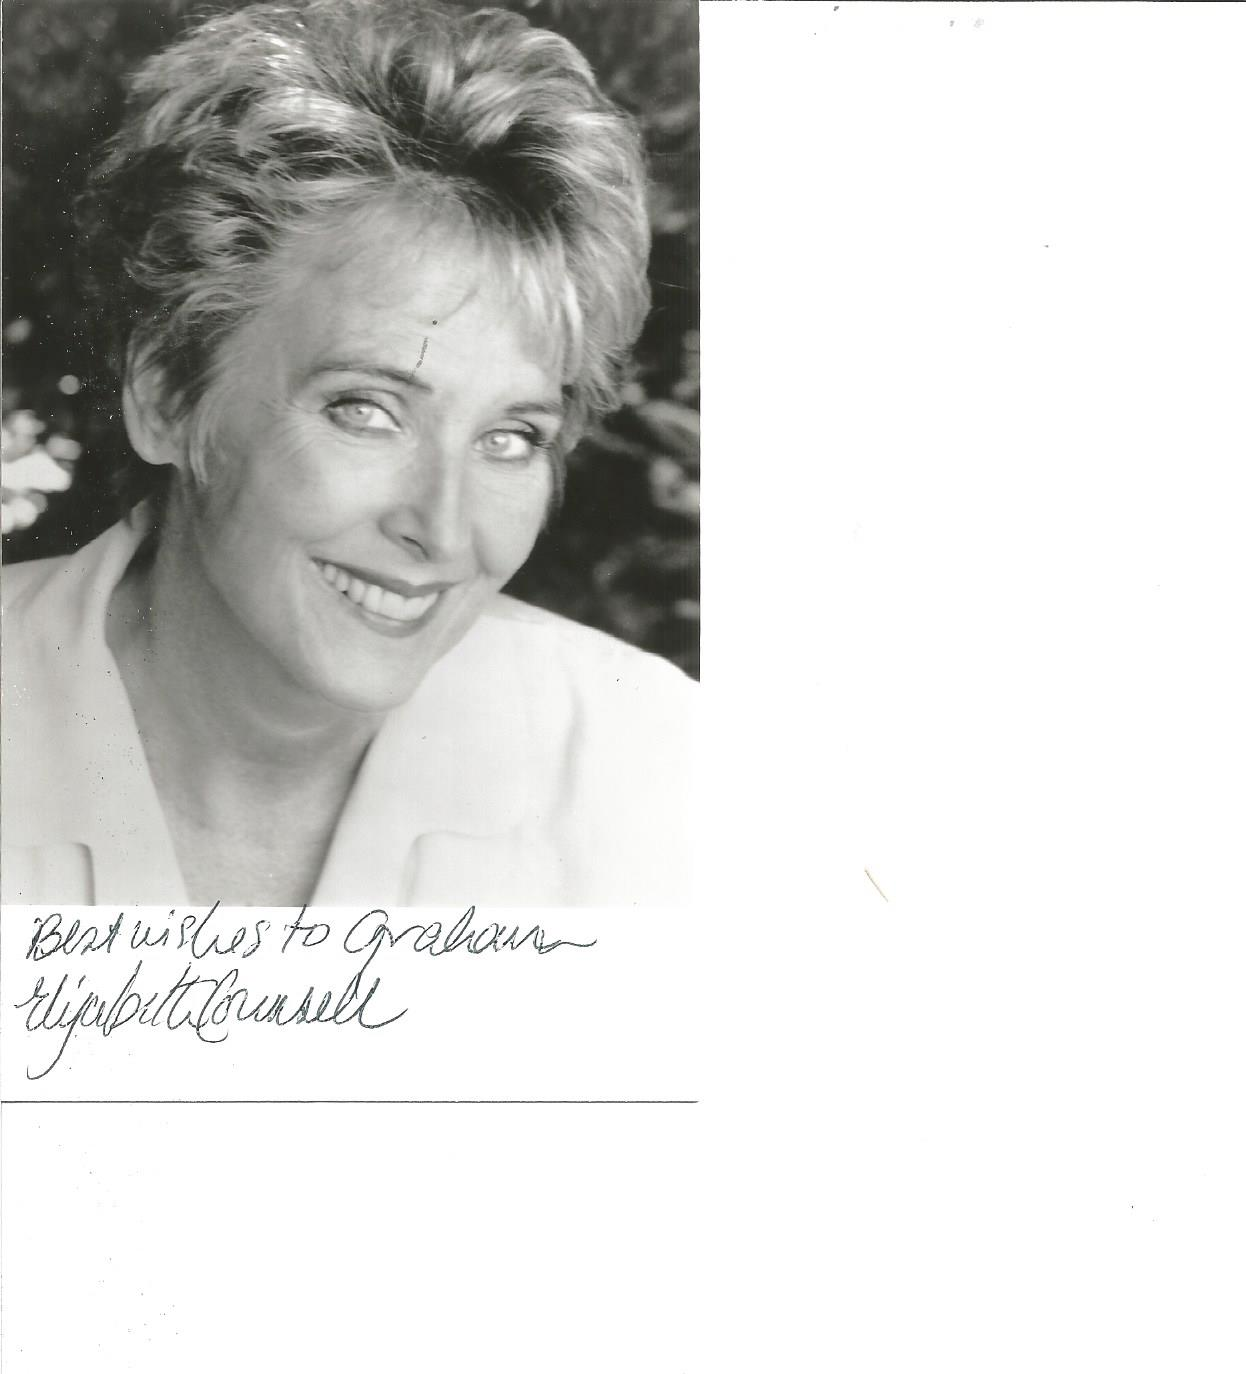 Lot 68 - Elizabeth Counsell signed 6x4 b/w photo. Dedicated. Good Condition. All signed pieces come with a